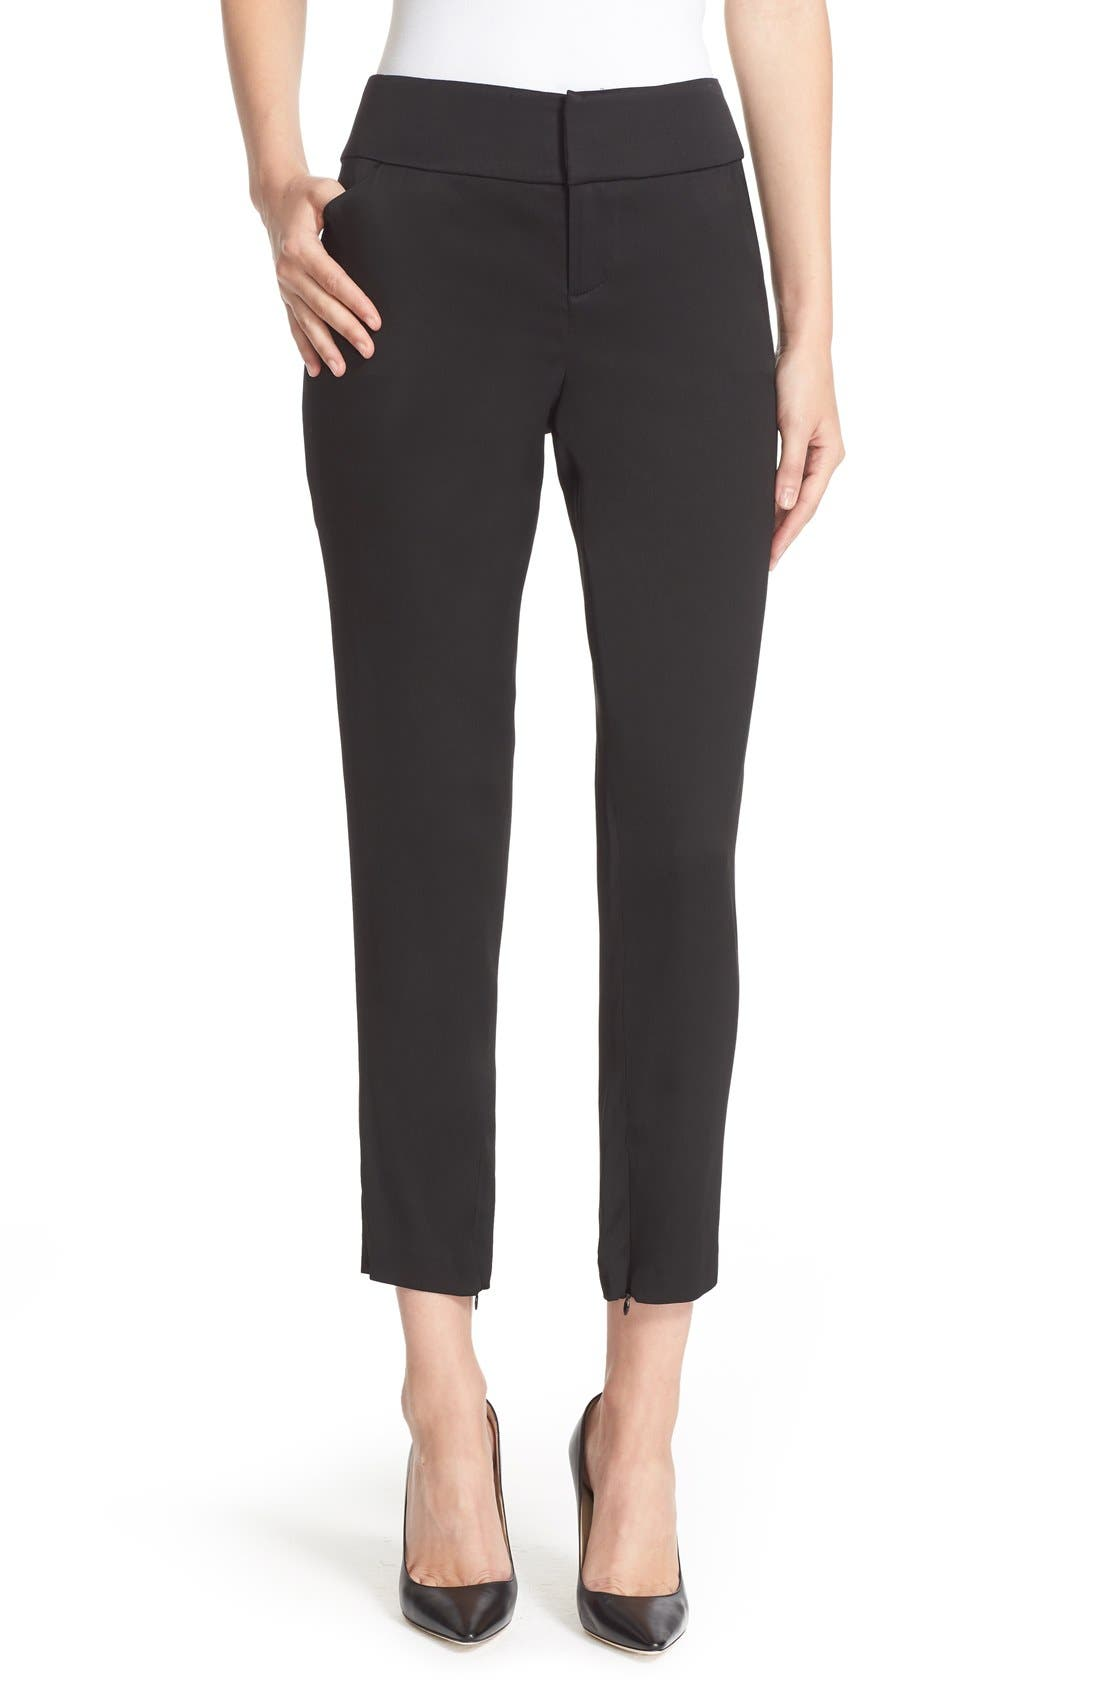 ALICE + OLIVIA,                             Stacey Wide Waist Fitted Ankle Trousers,                             Main thumbnail 1, color,                             001